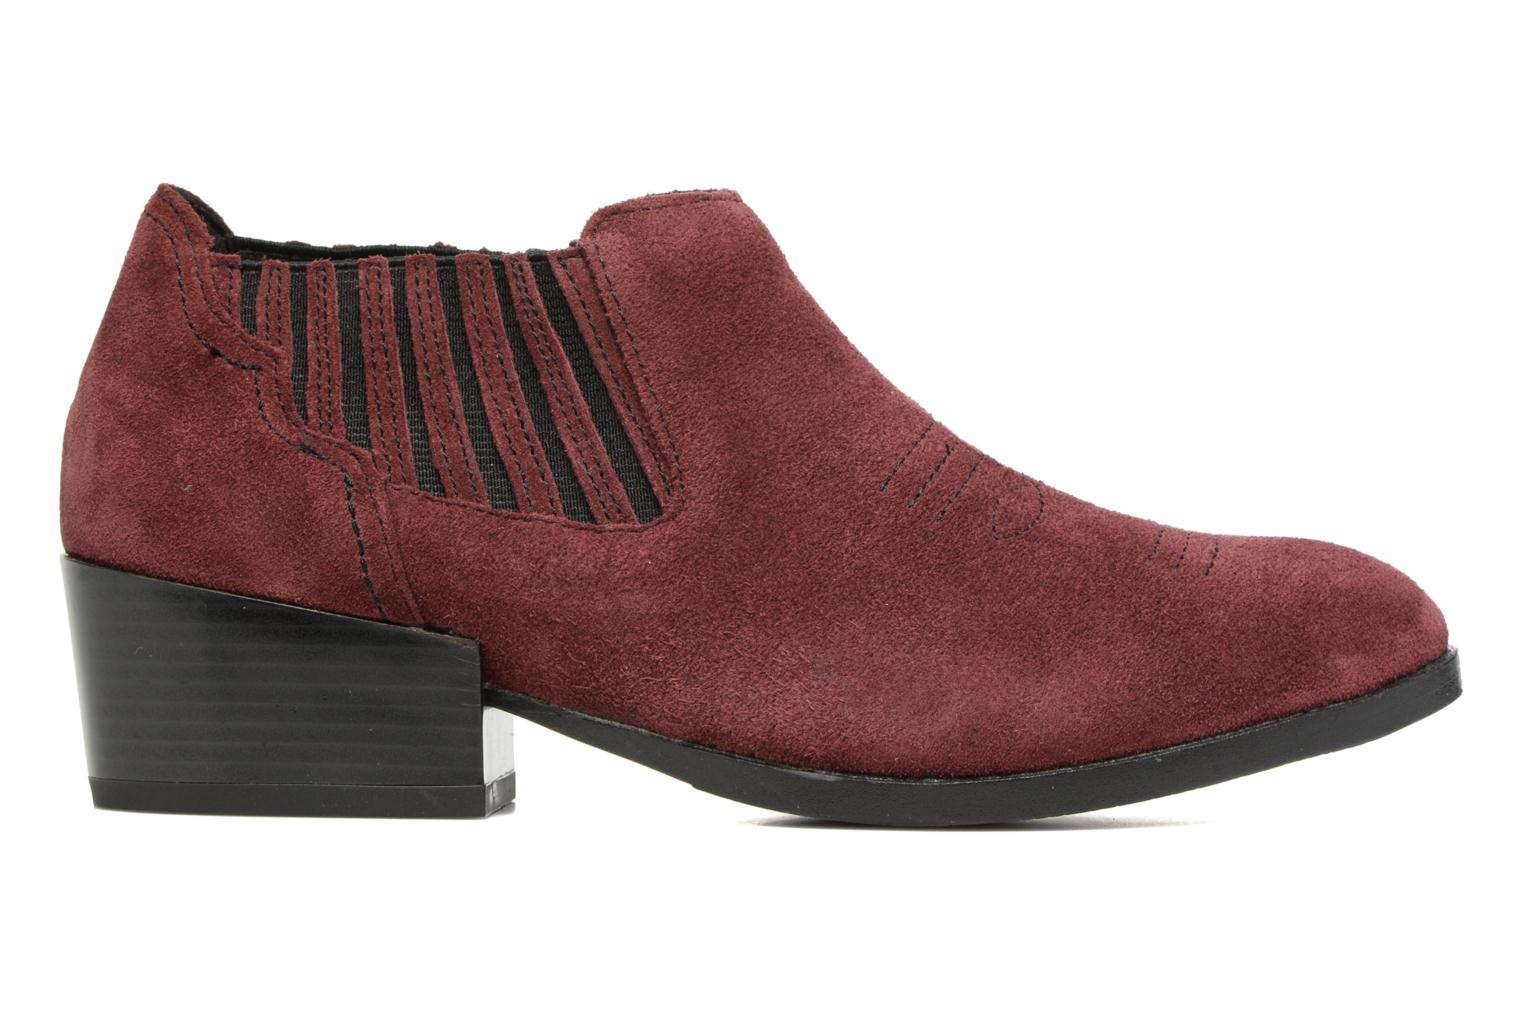 Western Leather Low Boot Decadent Chocolate